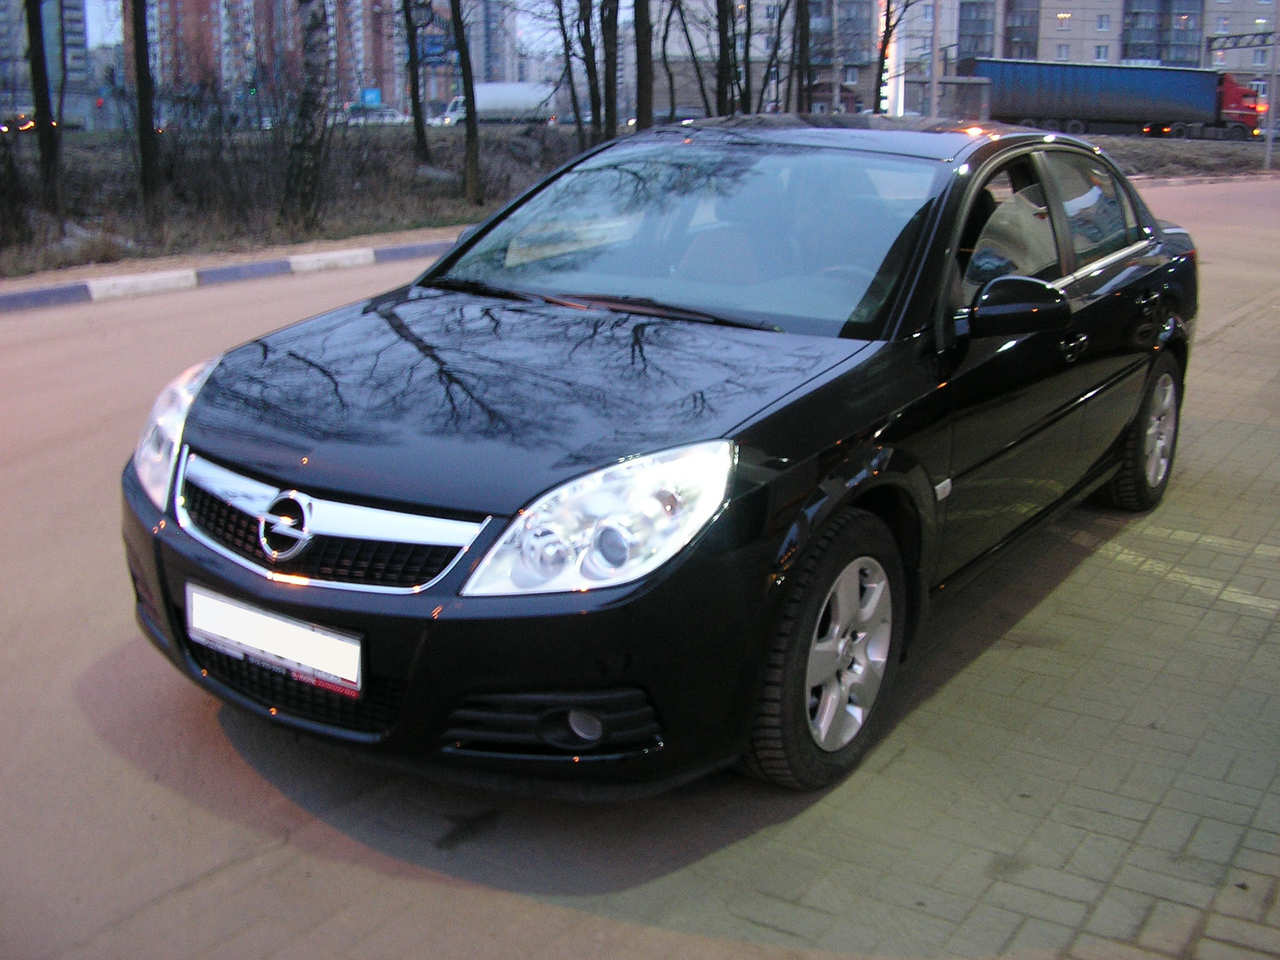 2008 opel vectra pictures gasoline ff manual for. Black Bedroom Furniture Sets. Home Design Ideas